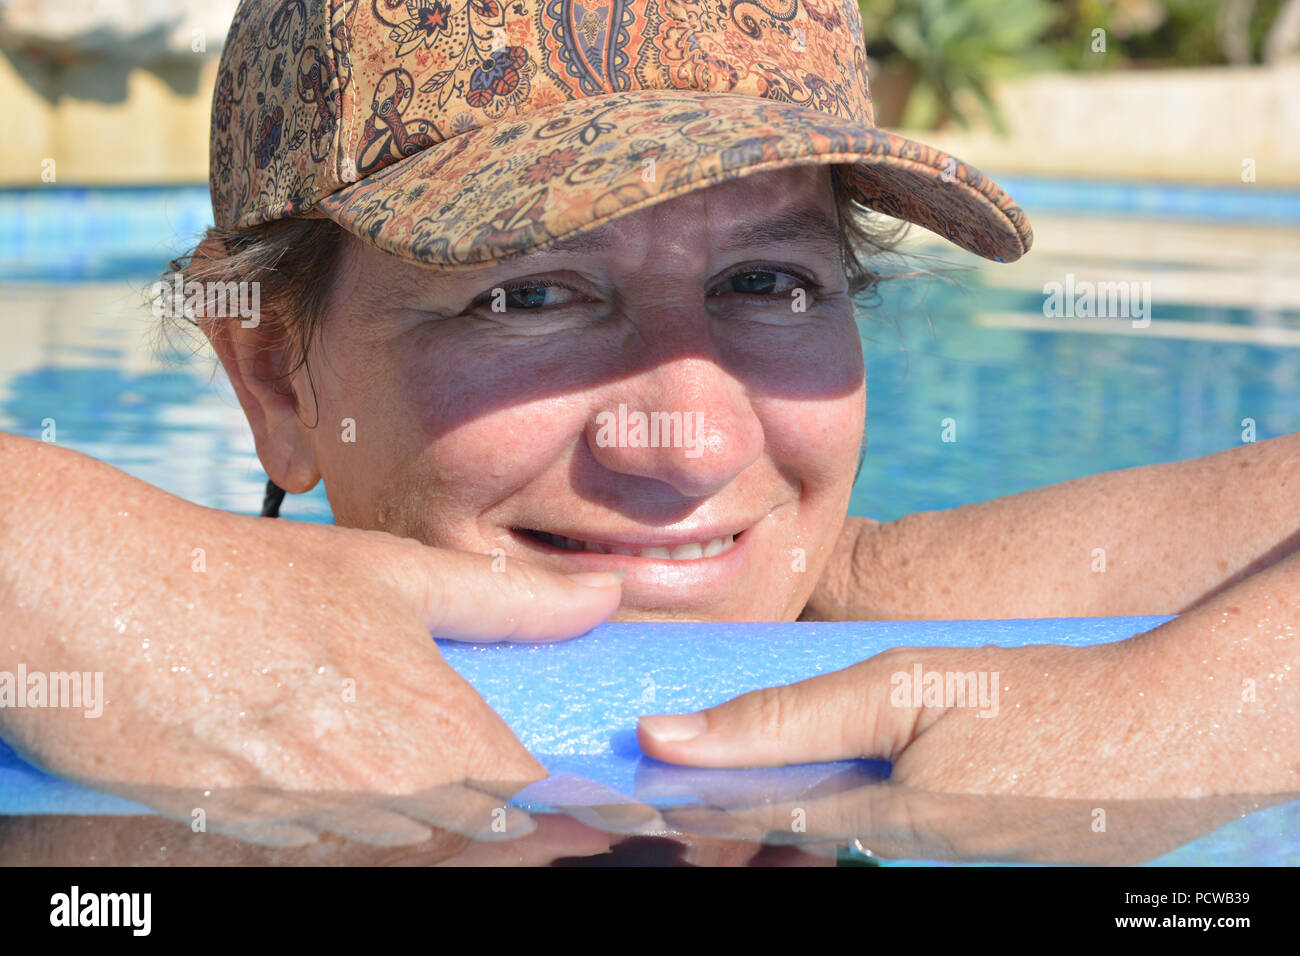 Woman, holding a pool noodle floating in a swimming pool, smiling to camera - Stock Image